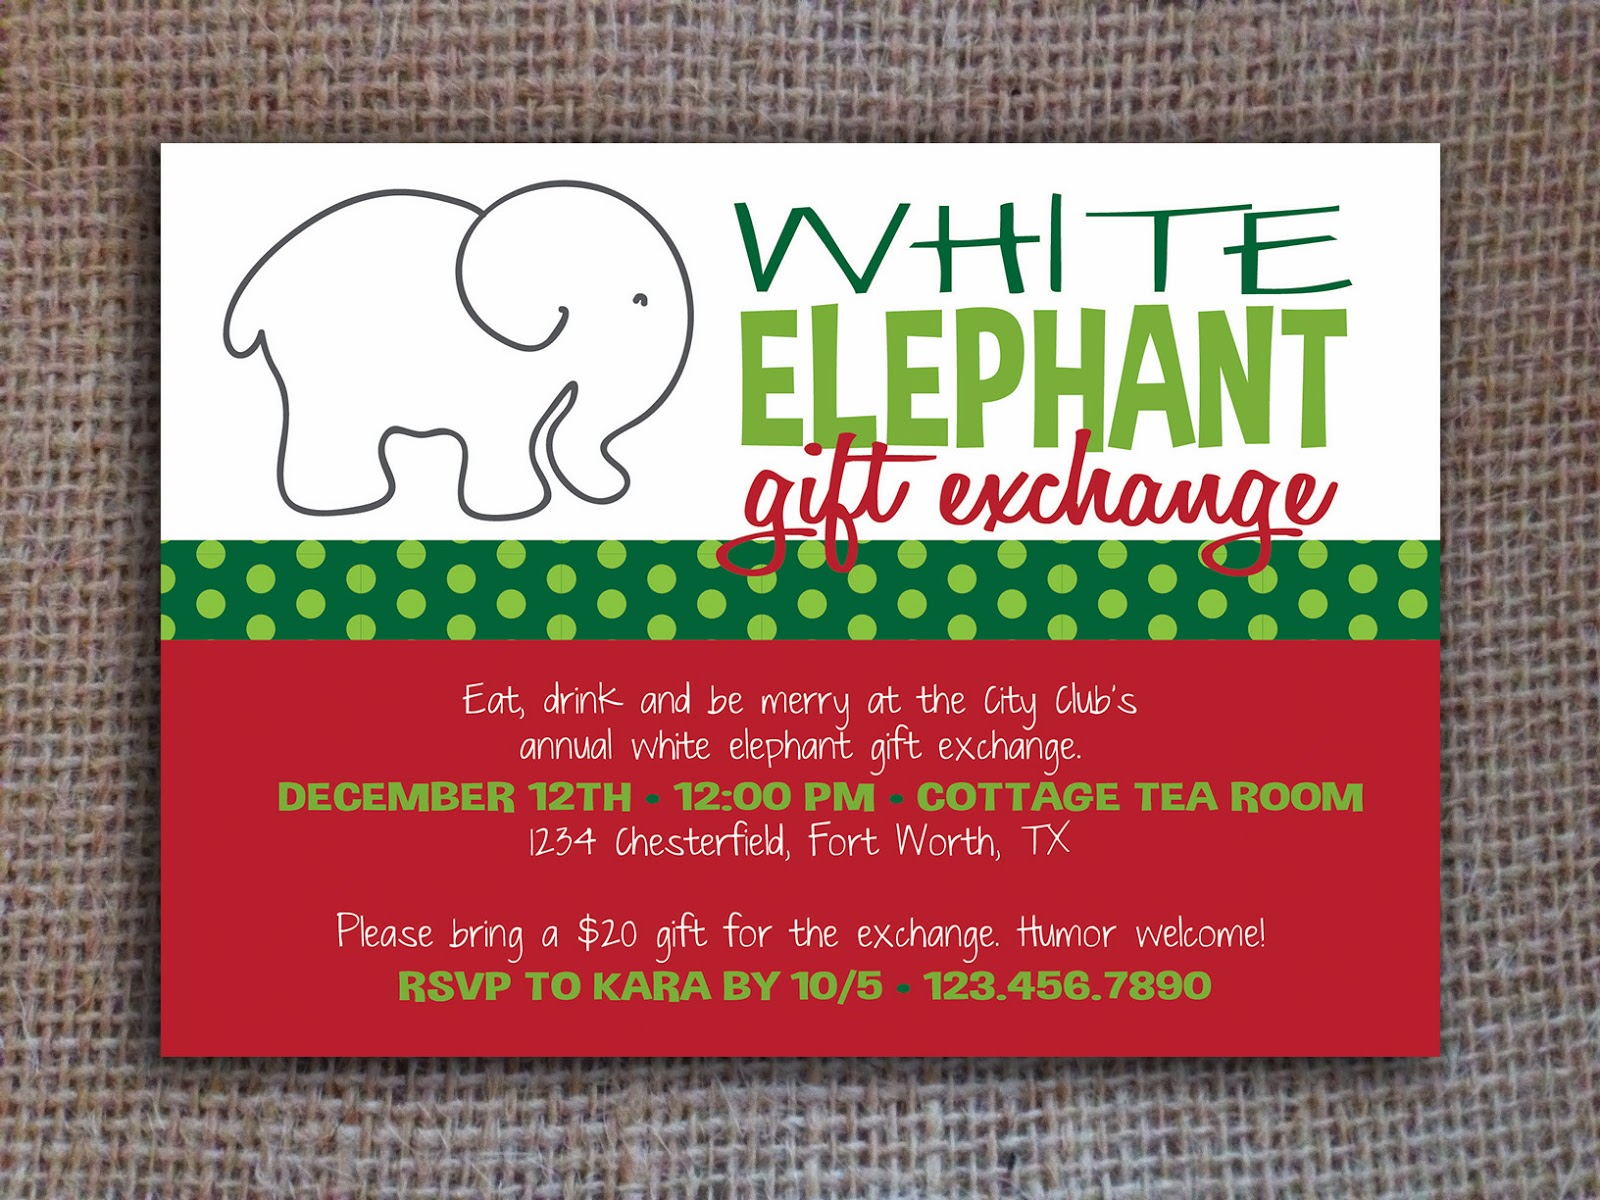 White Elephant Gift Exchange Clip Art - White elephant christmas party invitations templates